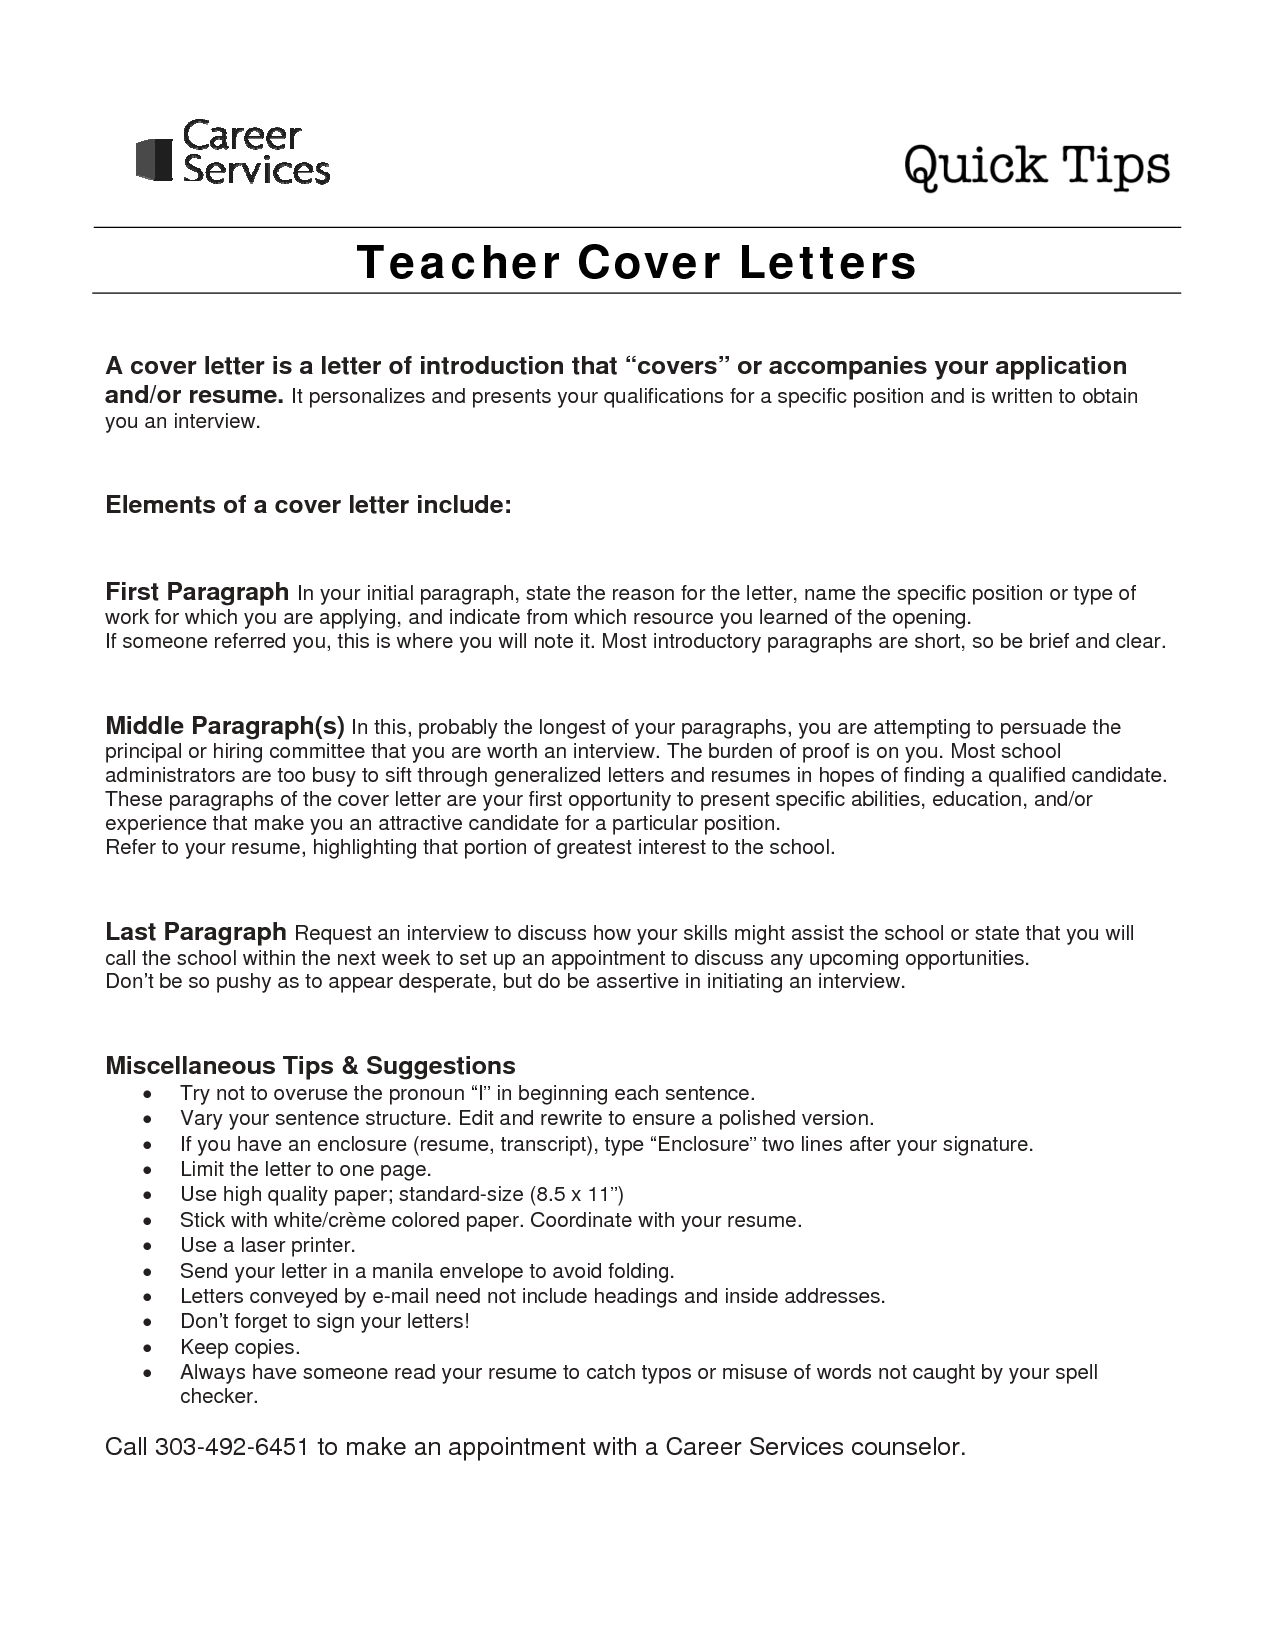 cover letter template for resume for teachers   elementary teacher    cover letter template for resume for teachers   elementary teacher  covering letter   cover letters resume   pinterest   template for resume